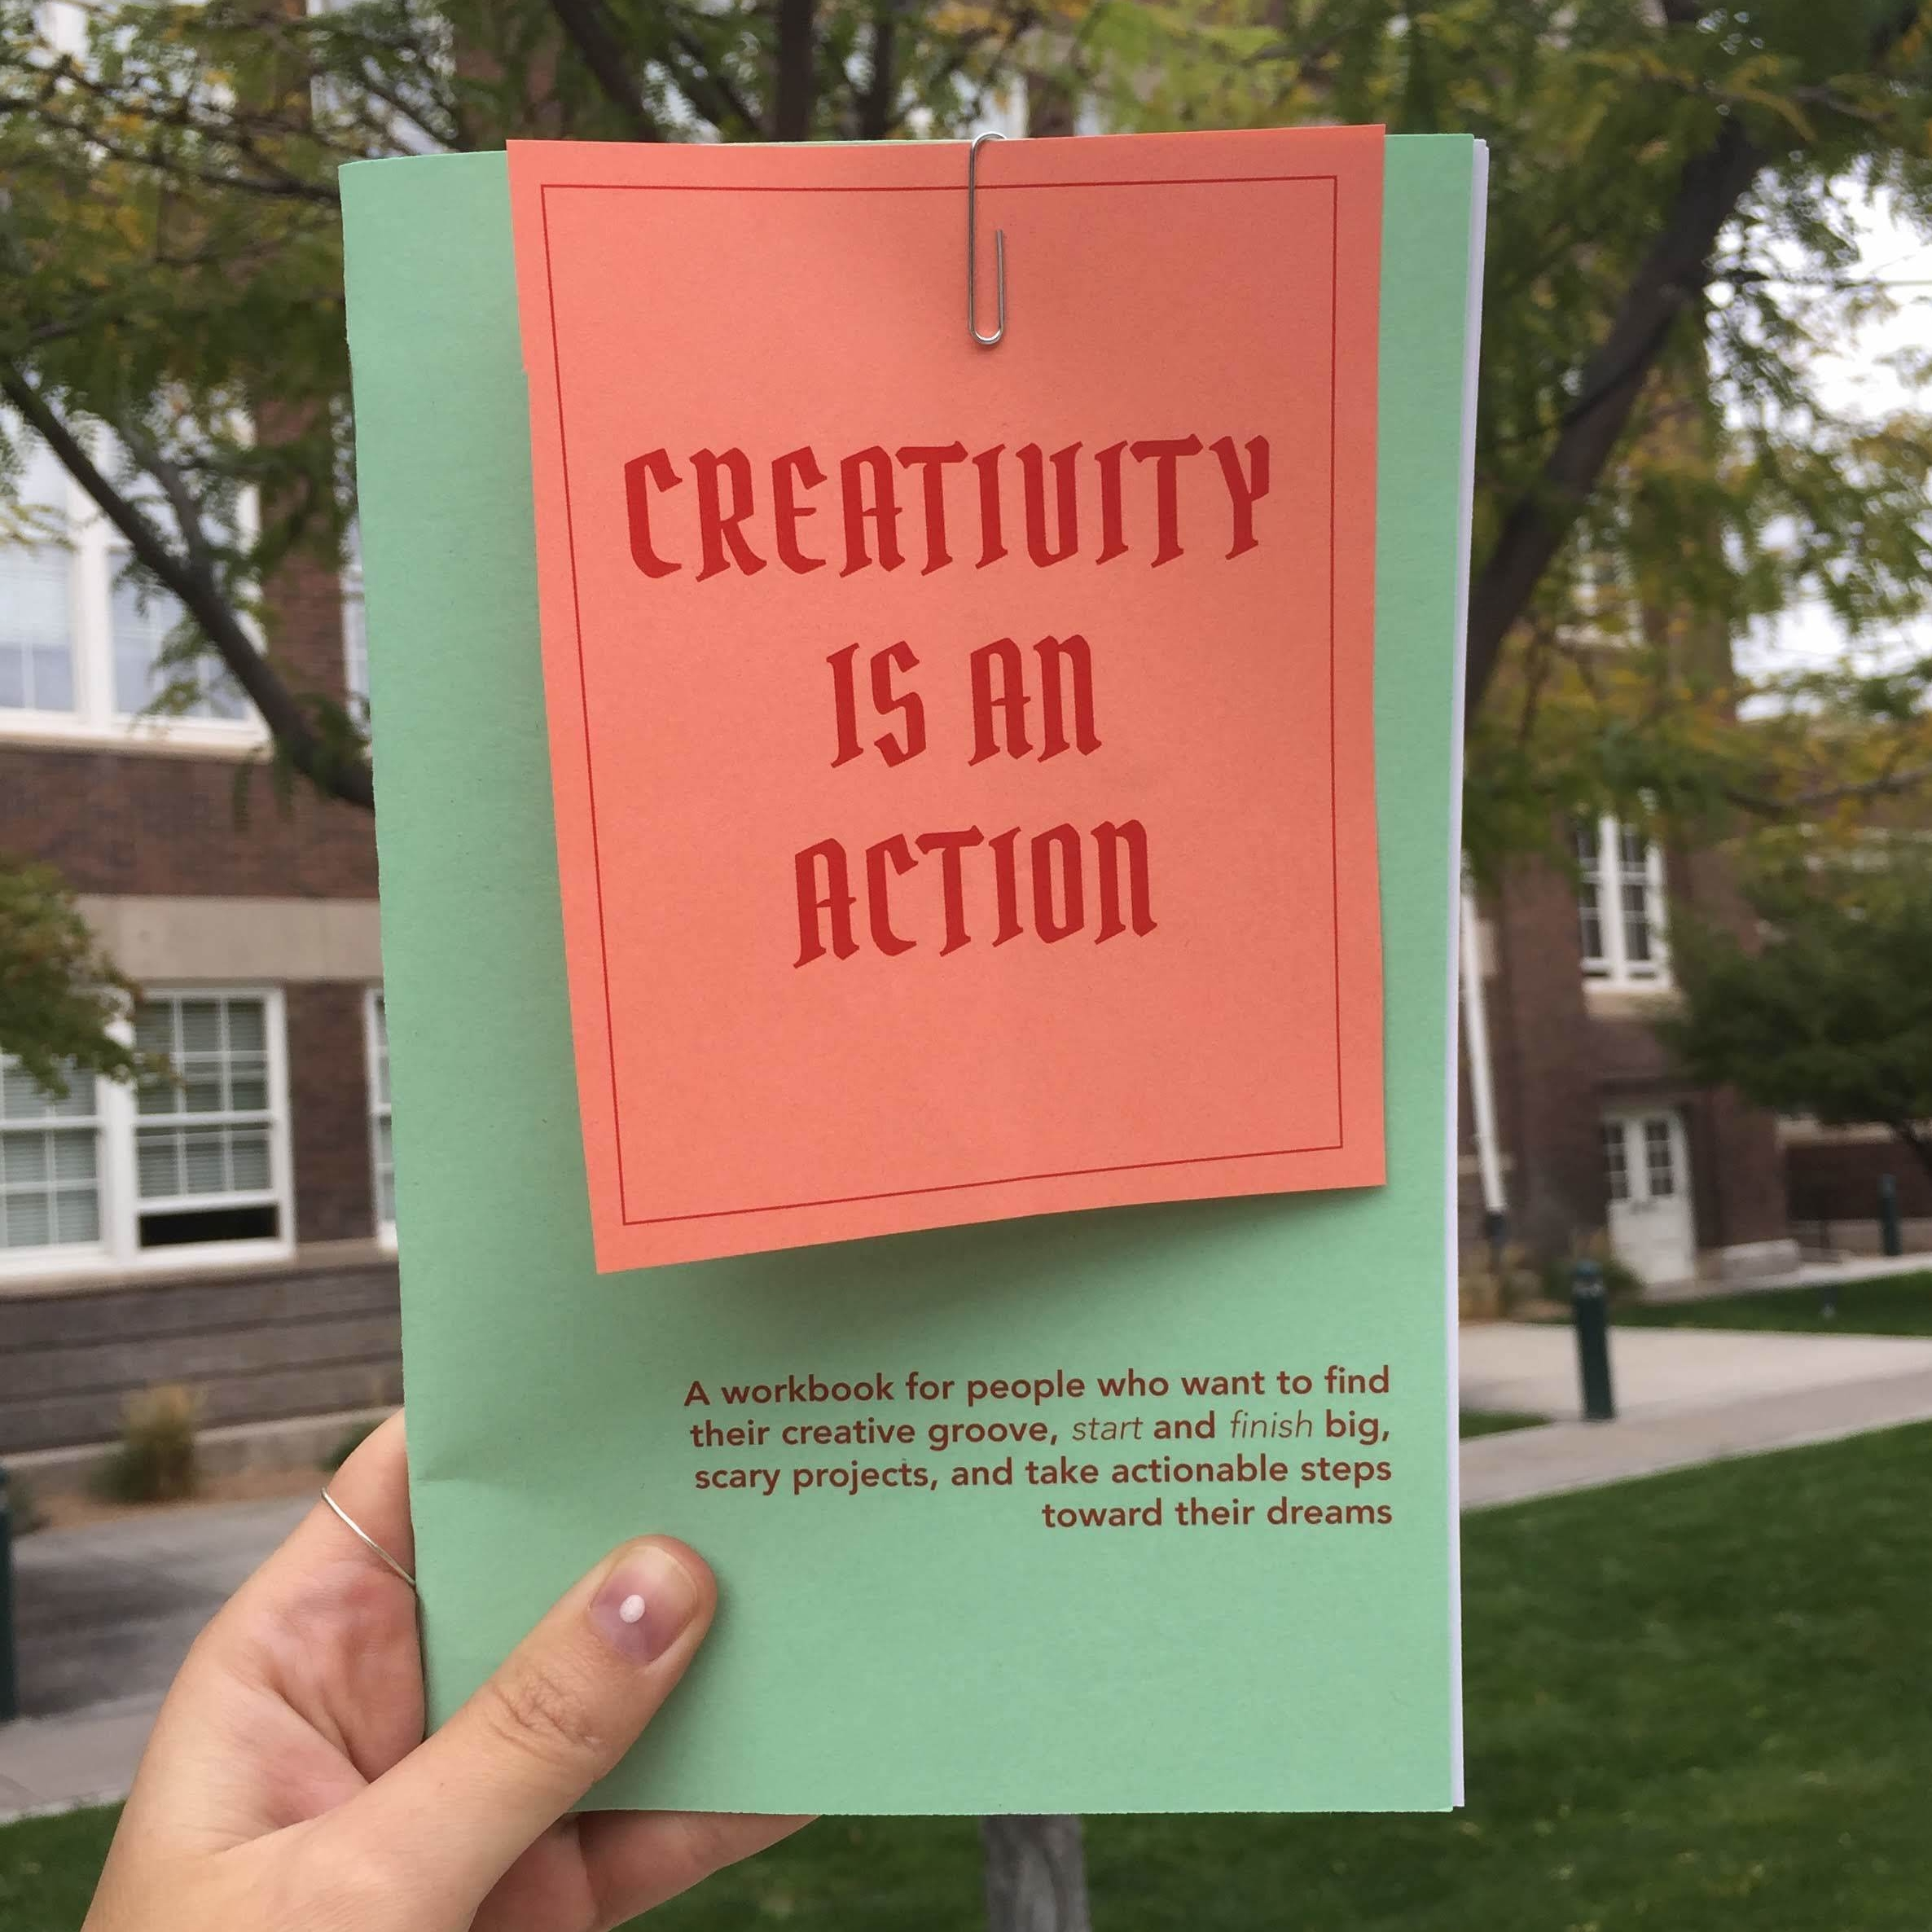 Creativity is an action